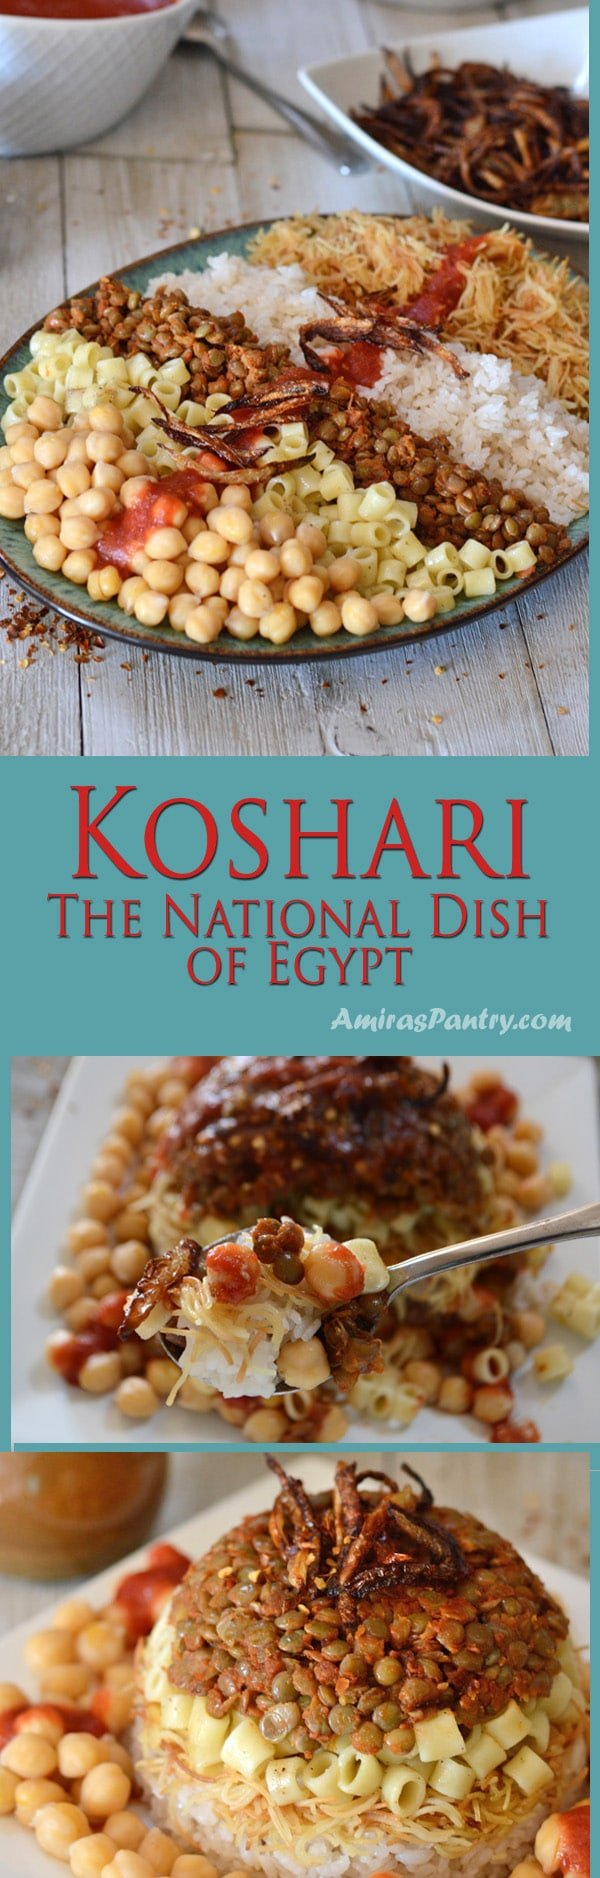 A table showing a plate with a serving of koshary with plates of tomato sauce, lentils, pasta and fried onions.